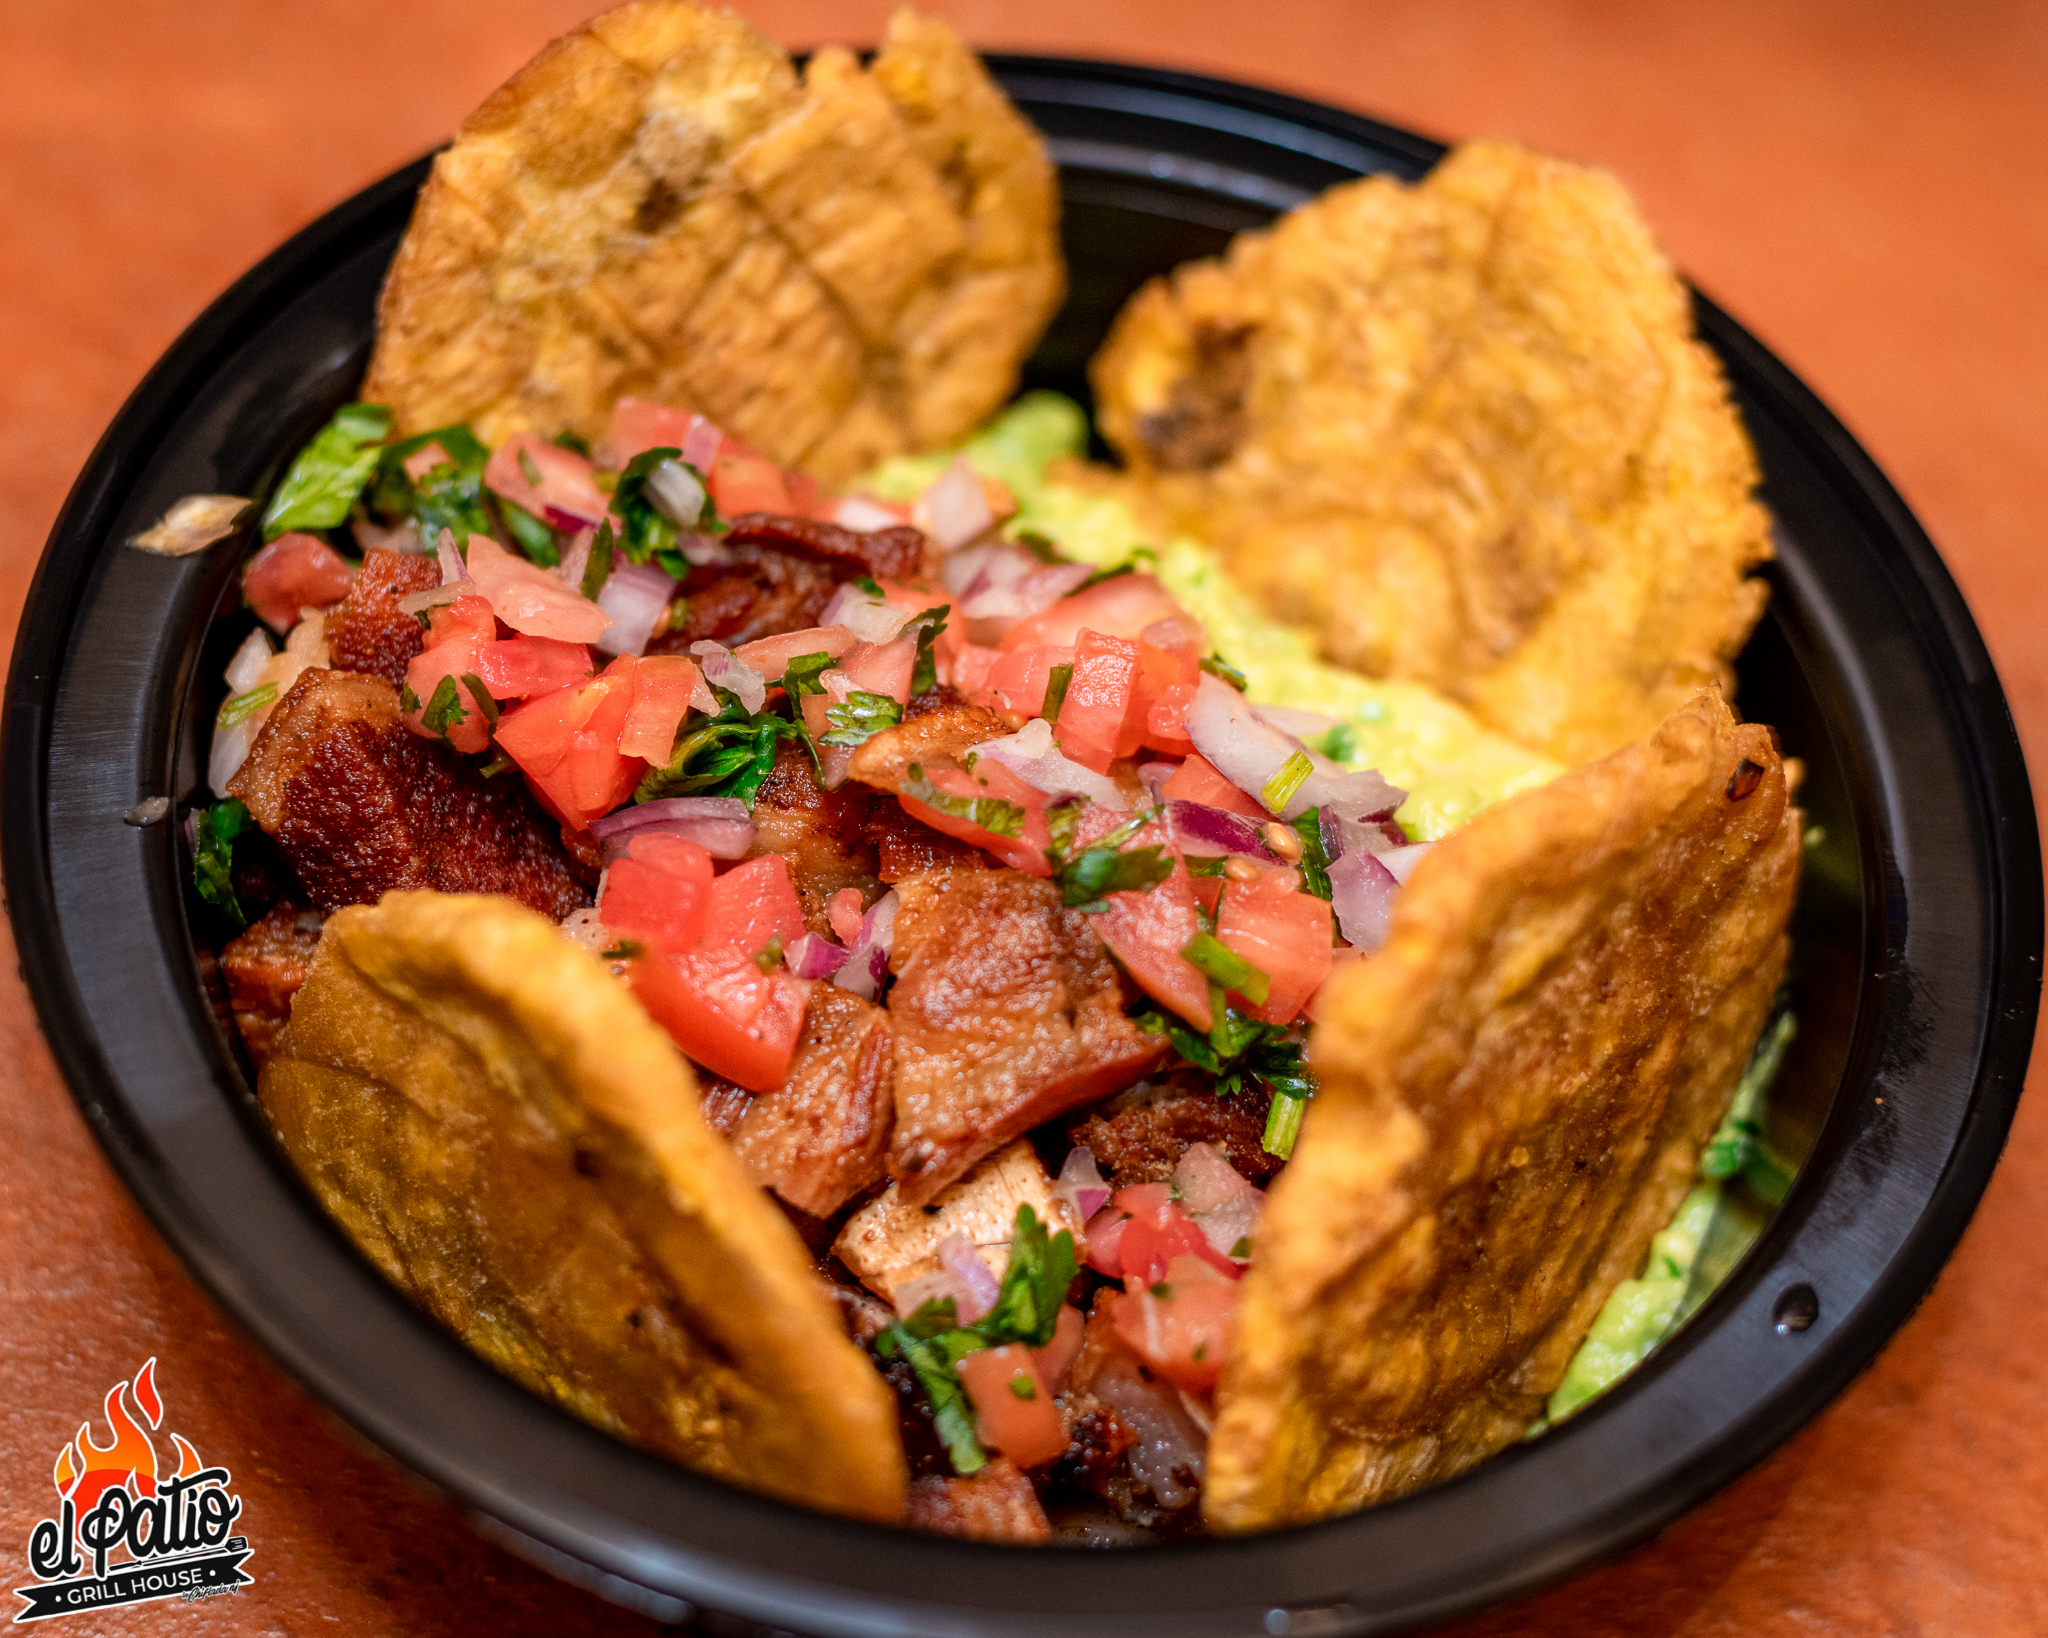 El Patio Grill House By La Chiflada Nj Bar And Grill Restaurant Paterson Restaurant Lechona Lunch Lunch Menu Dinner Menu Dinner Brunch Brunch Menu Happy Hour Private Party Empanadas Burgers